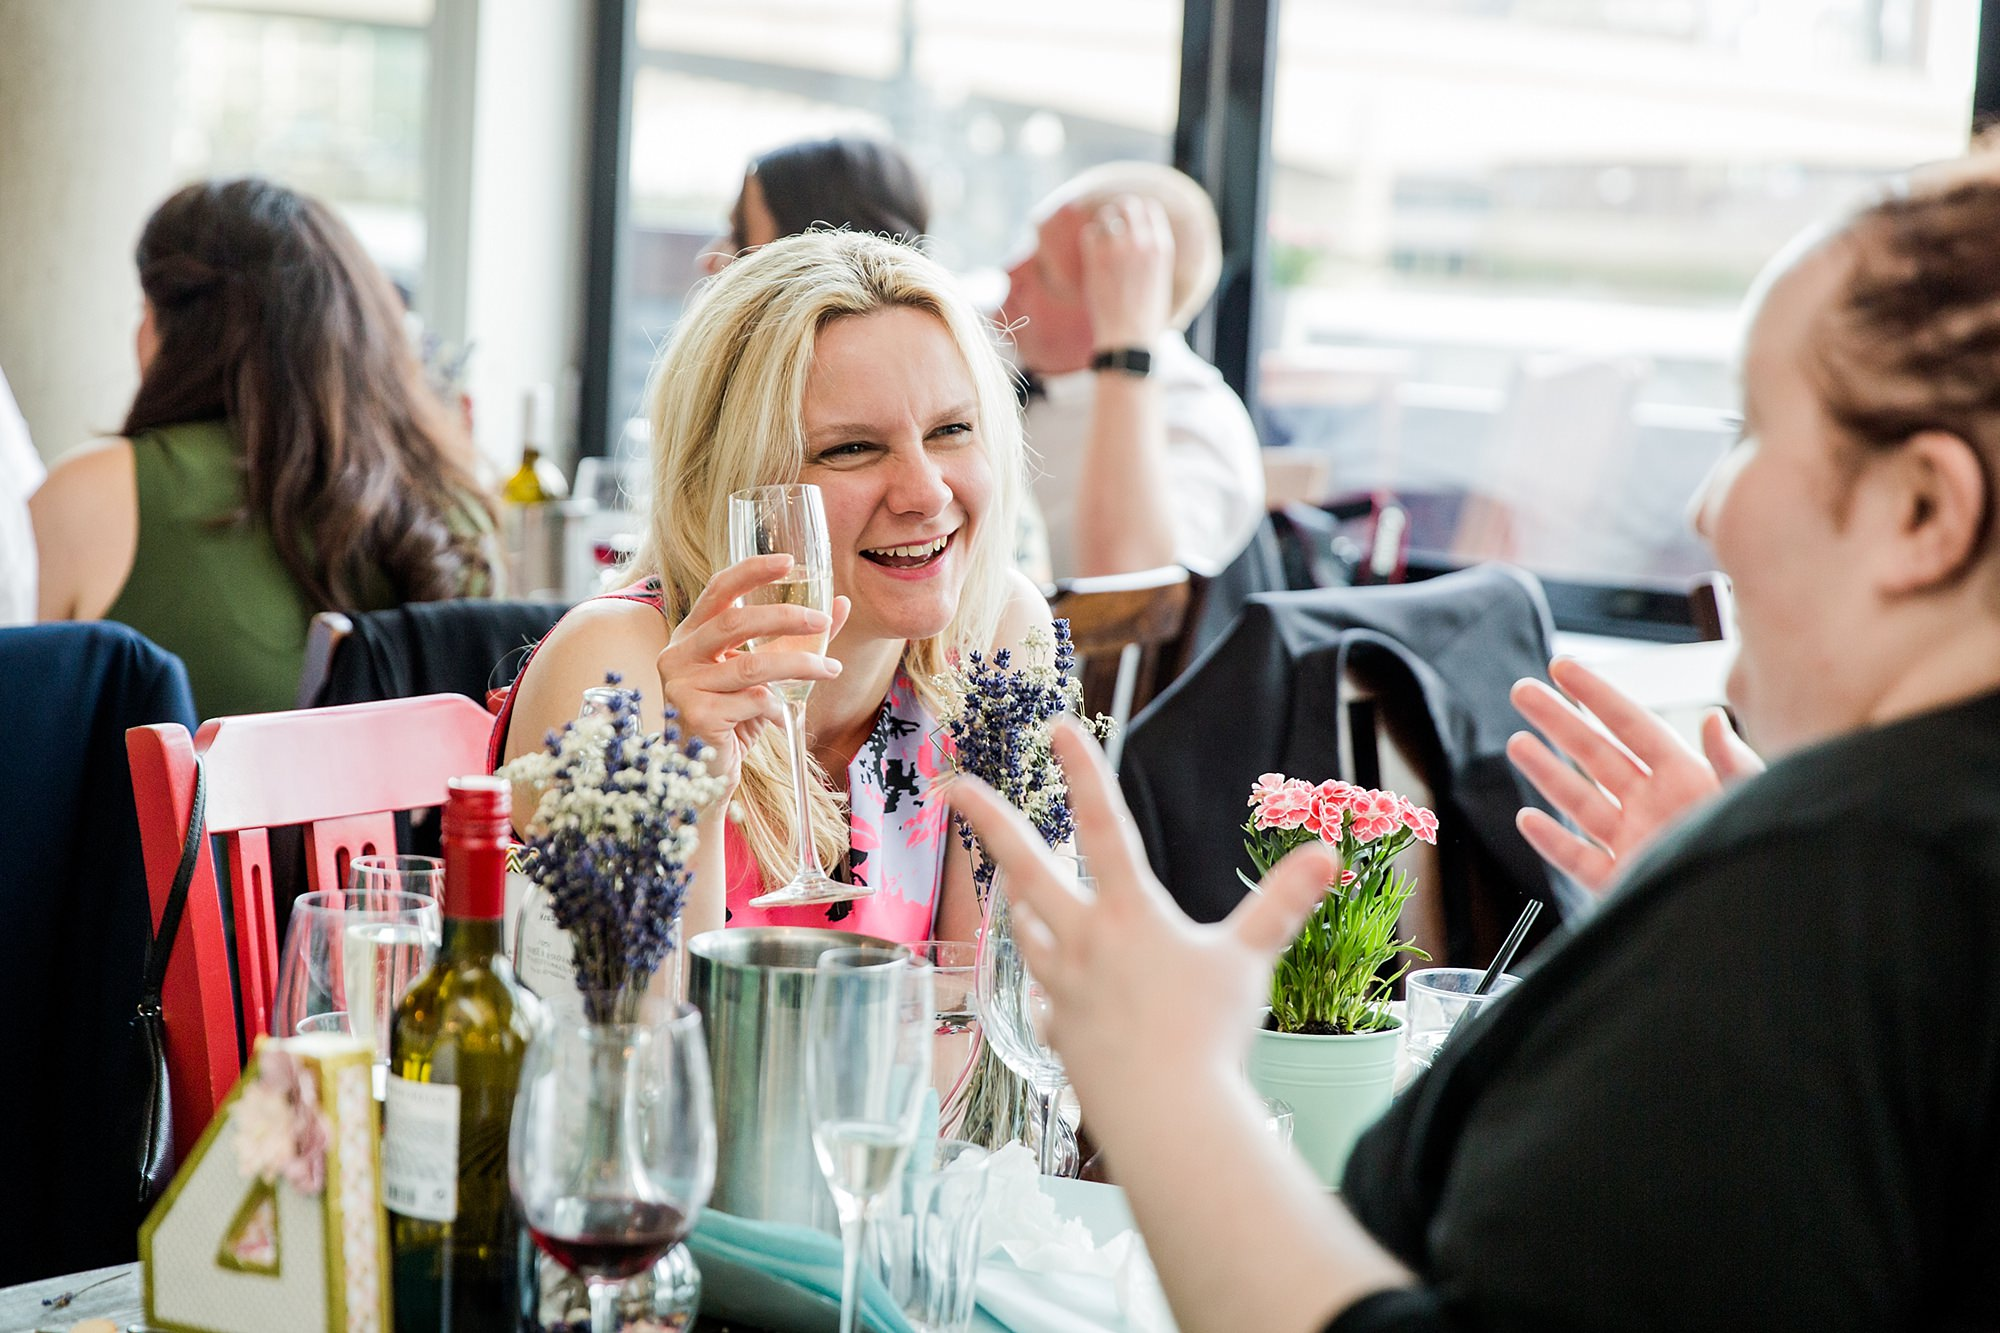 oyster shed wedding guests chatting together